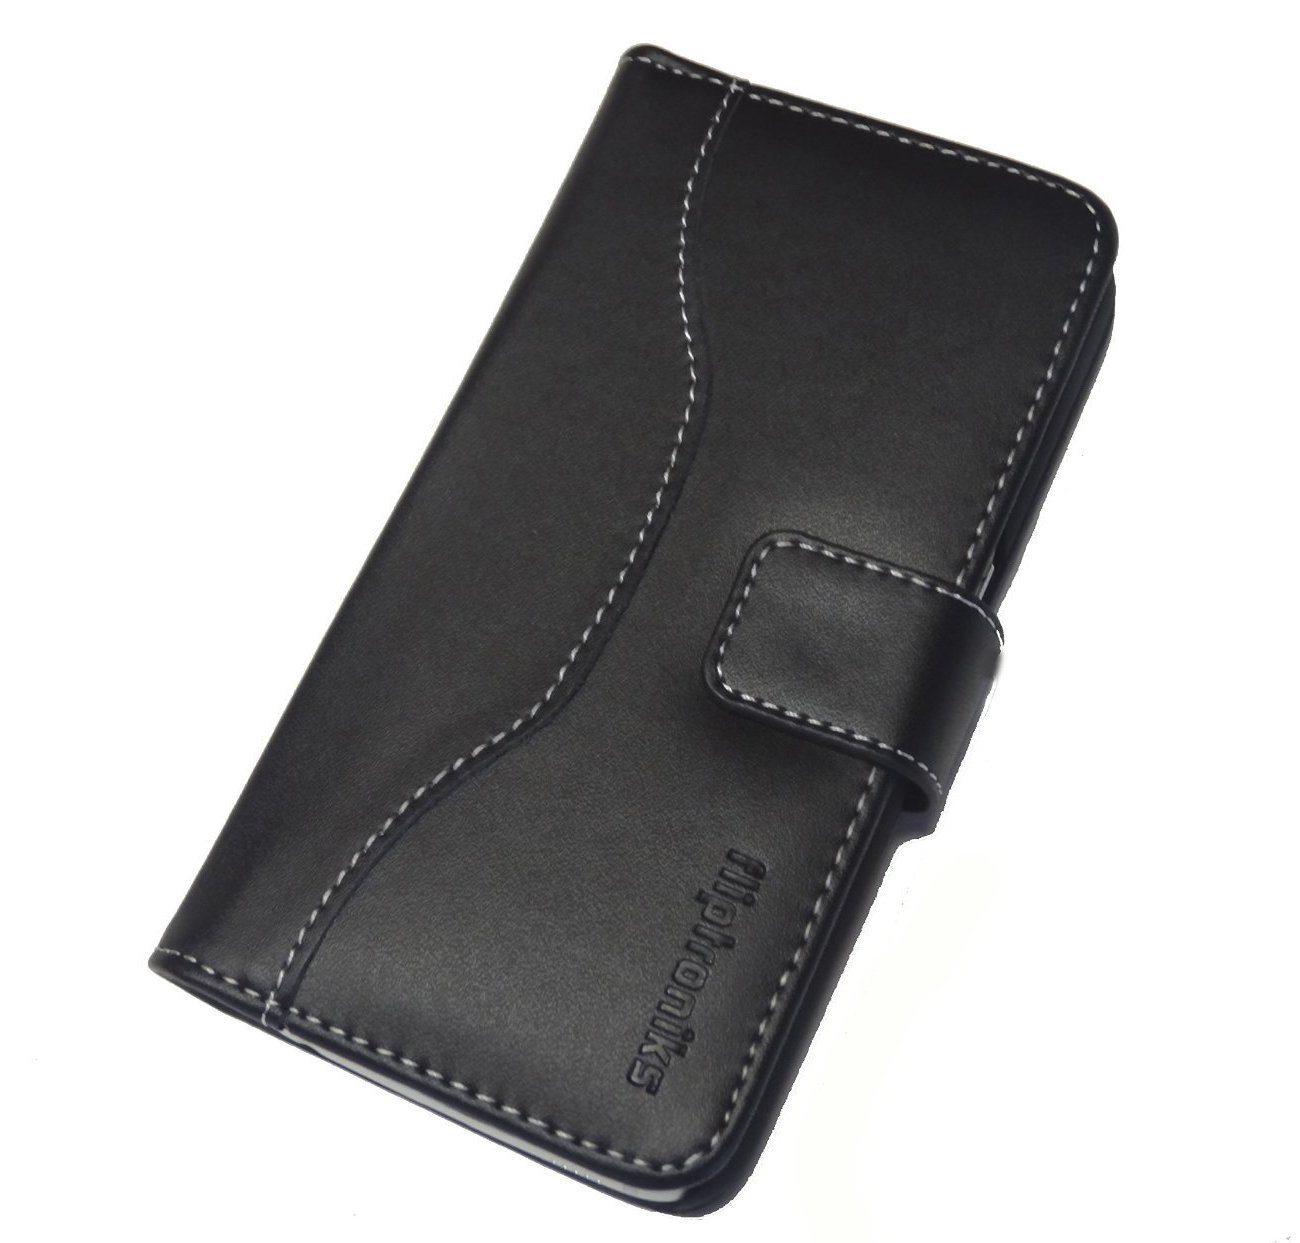 Fliptroniks Iphone 6 Plus Phone Case Wallet